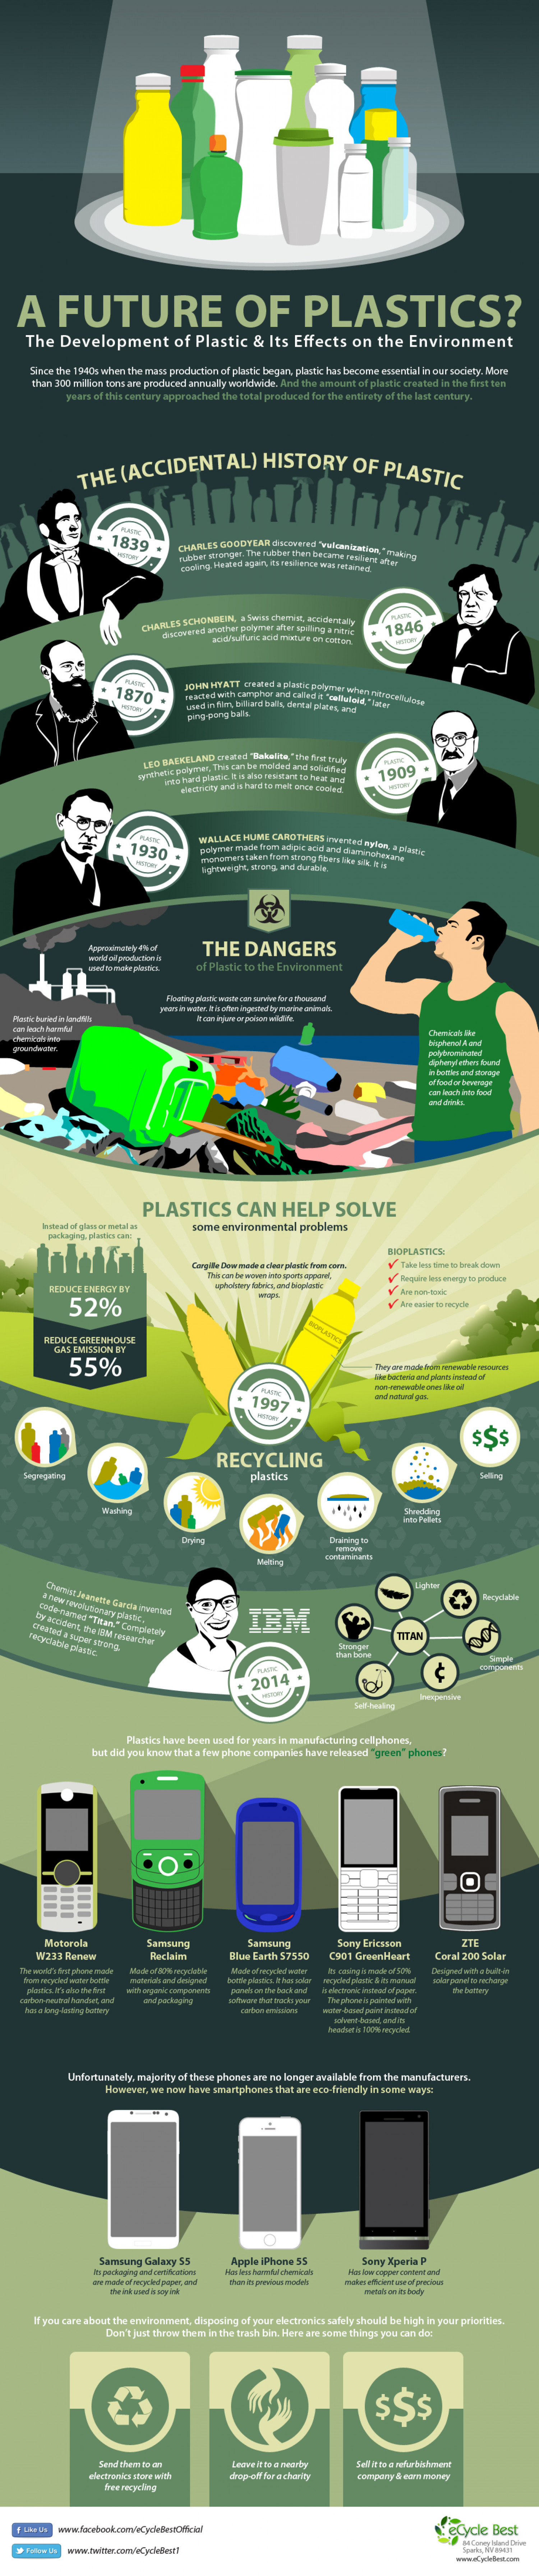 The Development of Plastic and Its Effect on the Environment Infographic